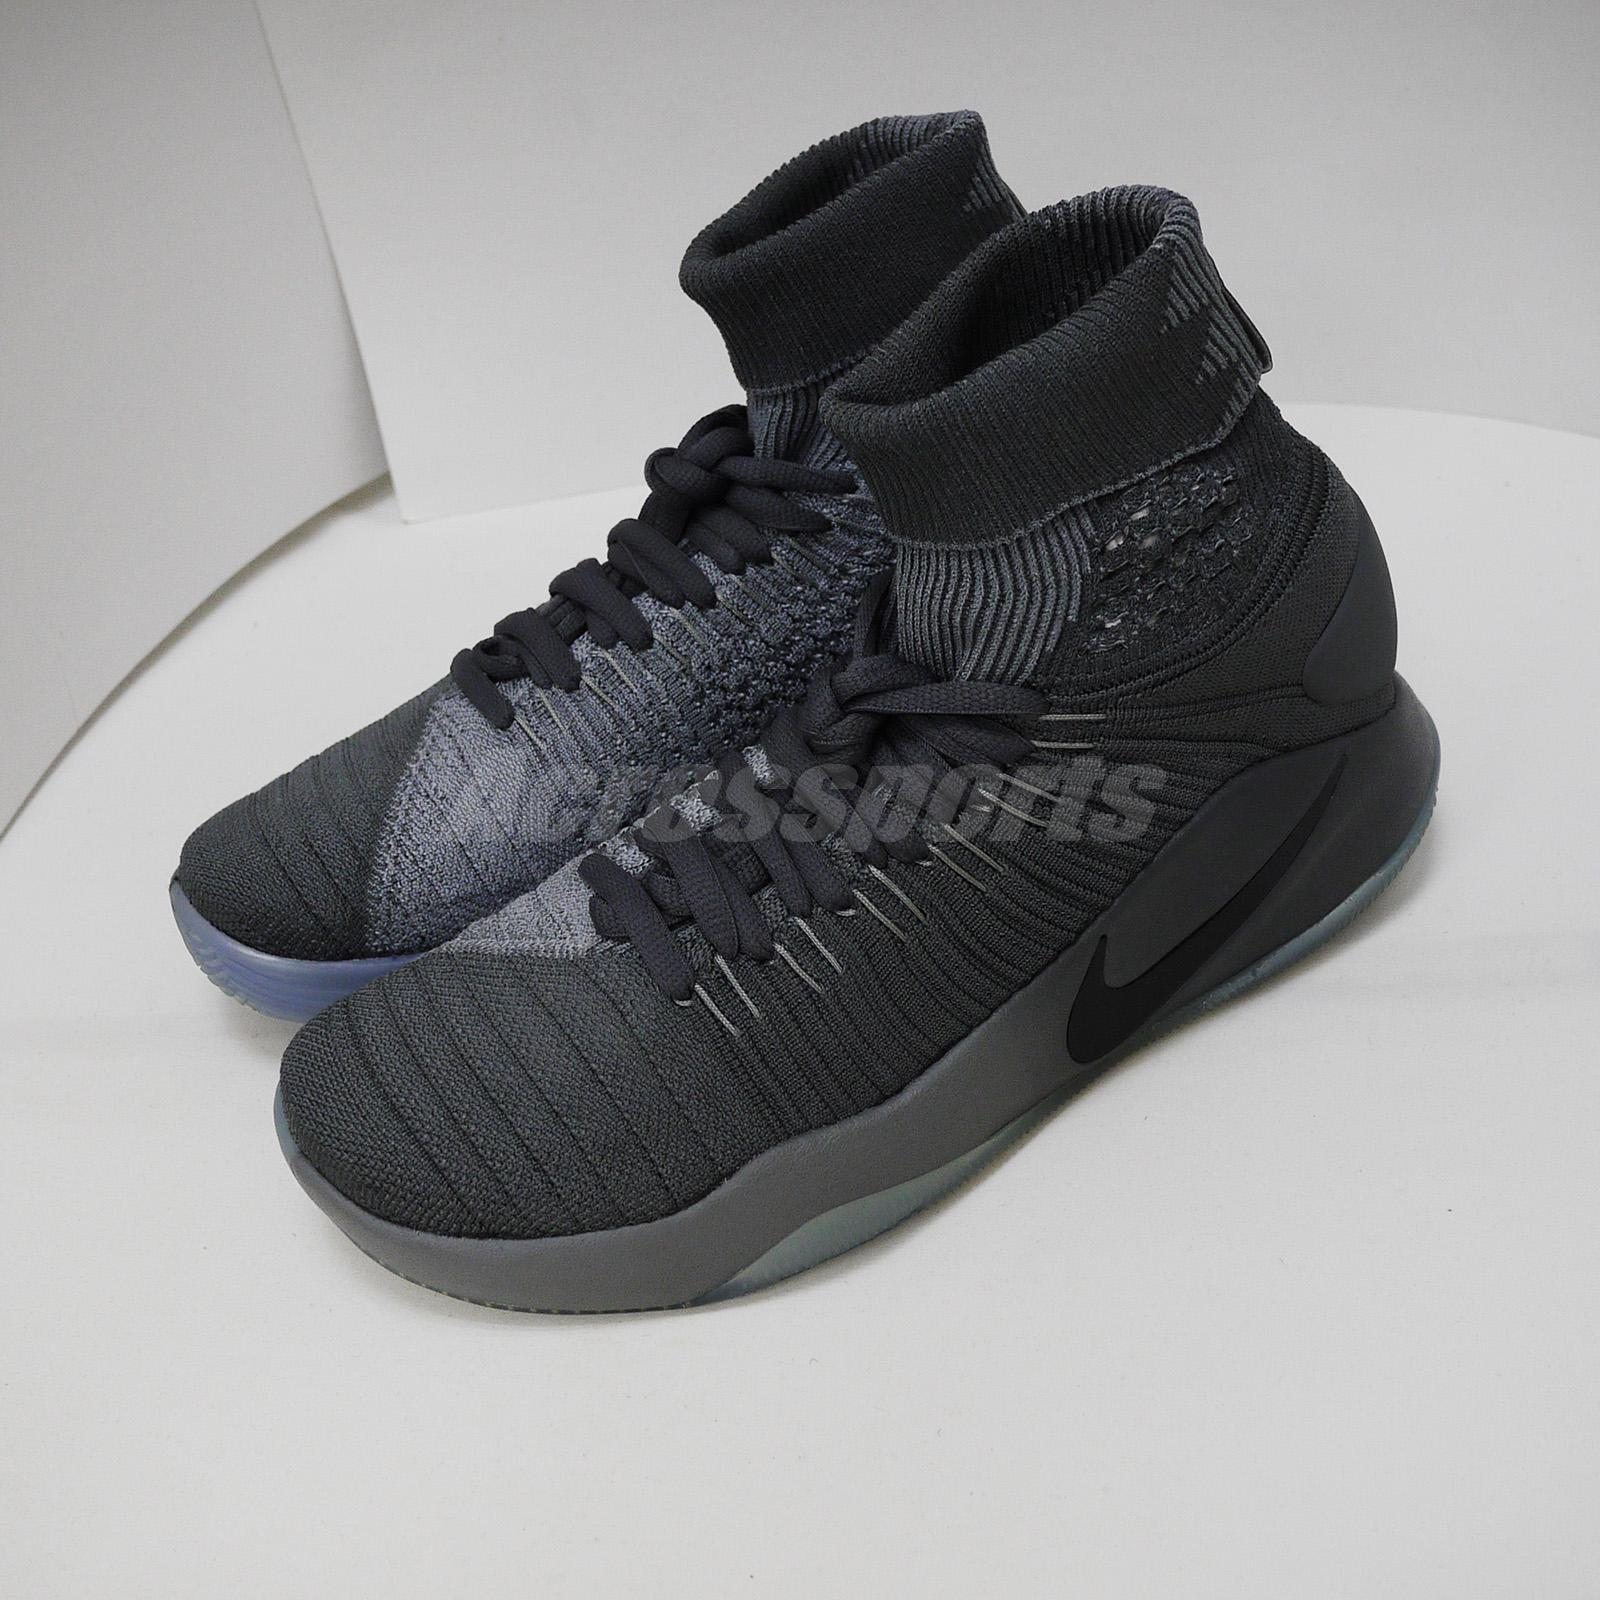 198a9f50bba9 Details about Nike Hyperdunk 2016 Flyknit Left Foot With Discoloration Men  US8.5 843390-002